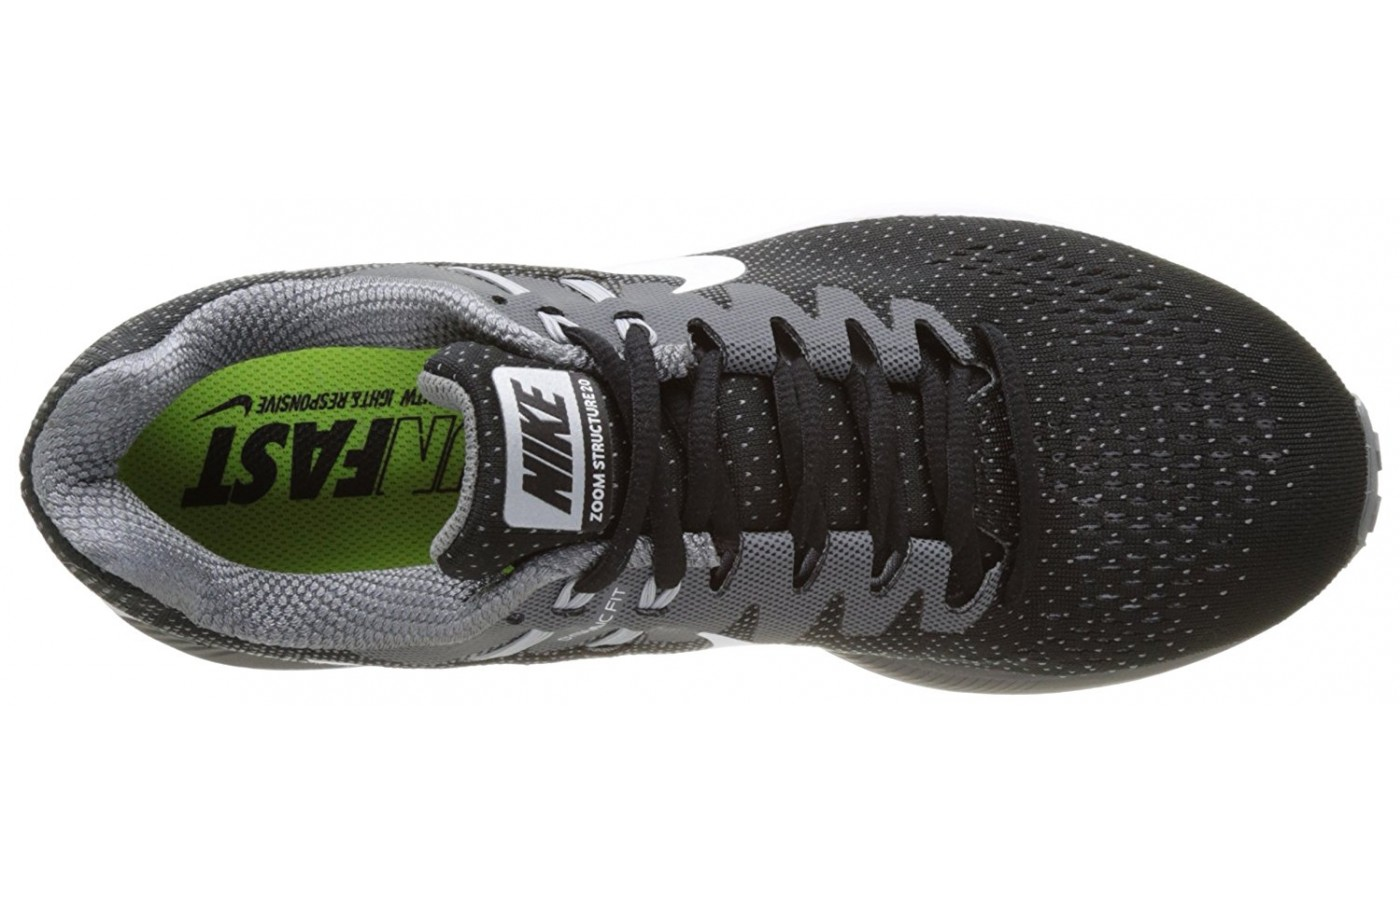 Top of the Nike Air Zoom Structure 20 running shoe